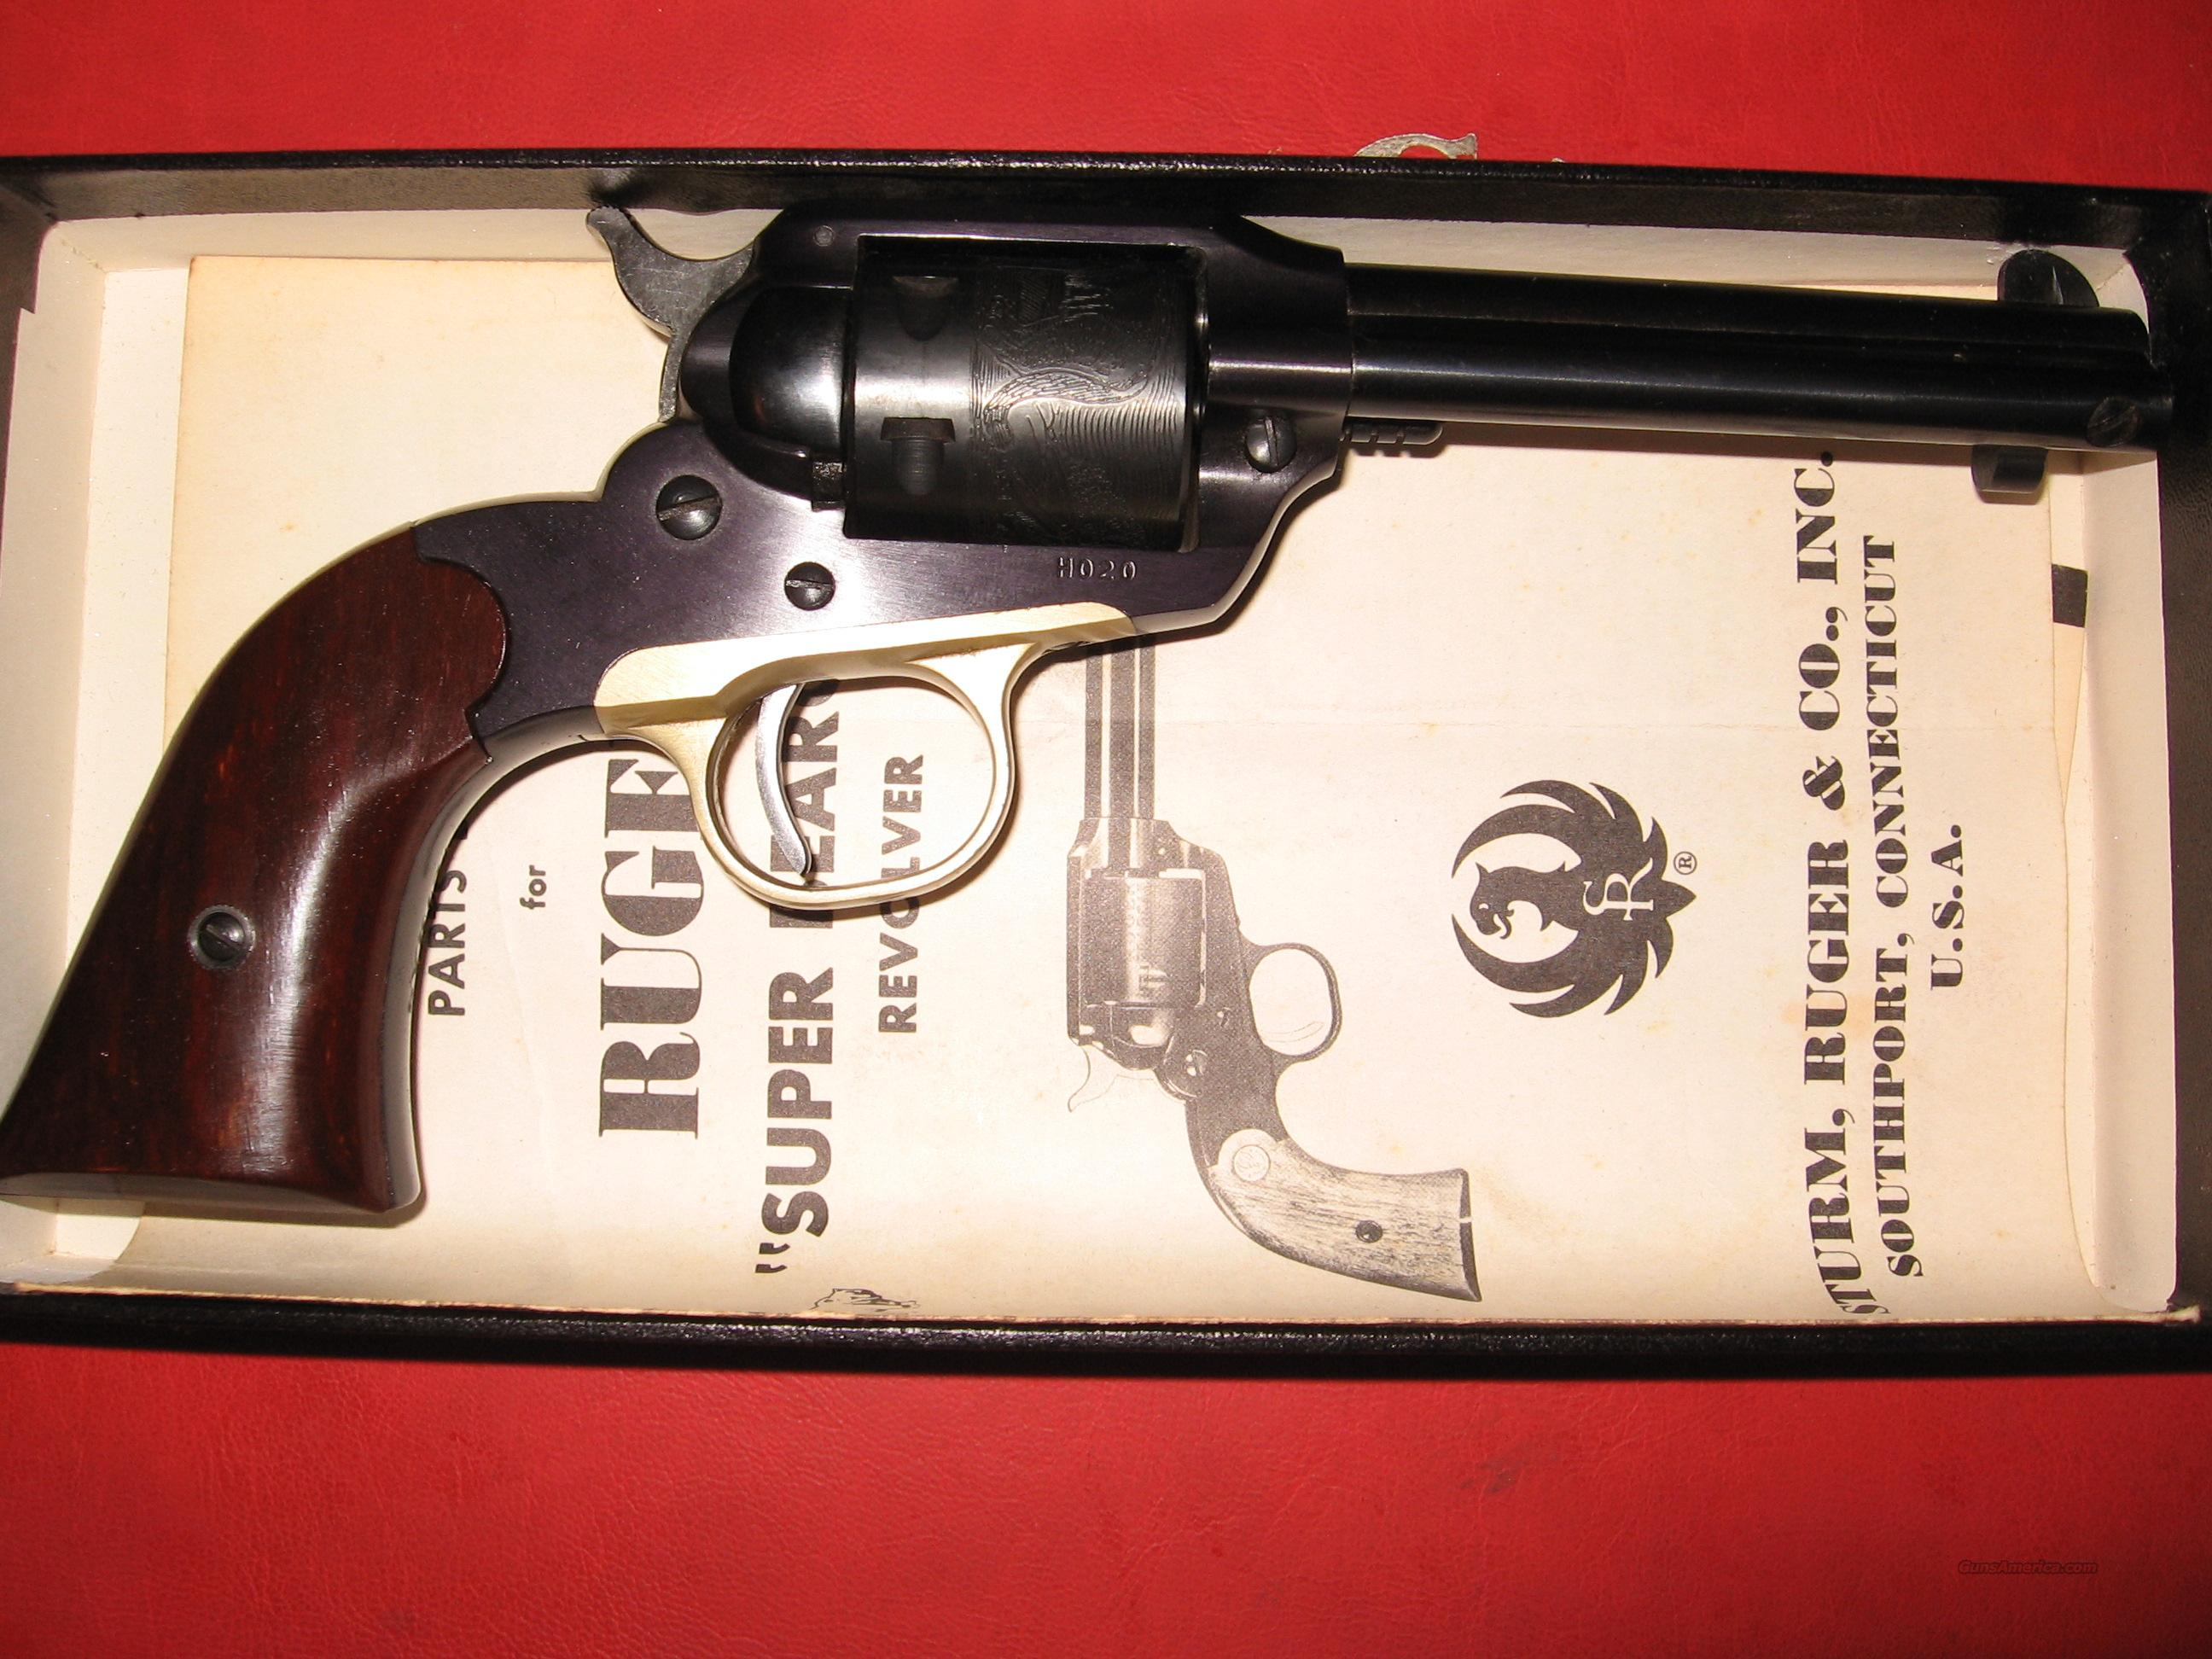 RUGER BEARCAT 1959 2ND YEAR ALPHABET MODEL  Guns > Pistols > Ruger Single Action Revolvers > Single Six Type